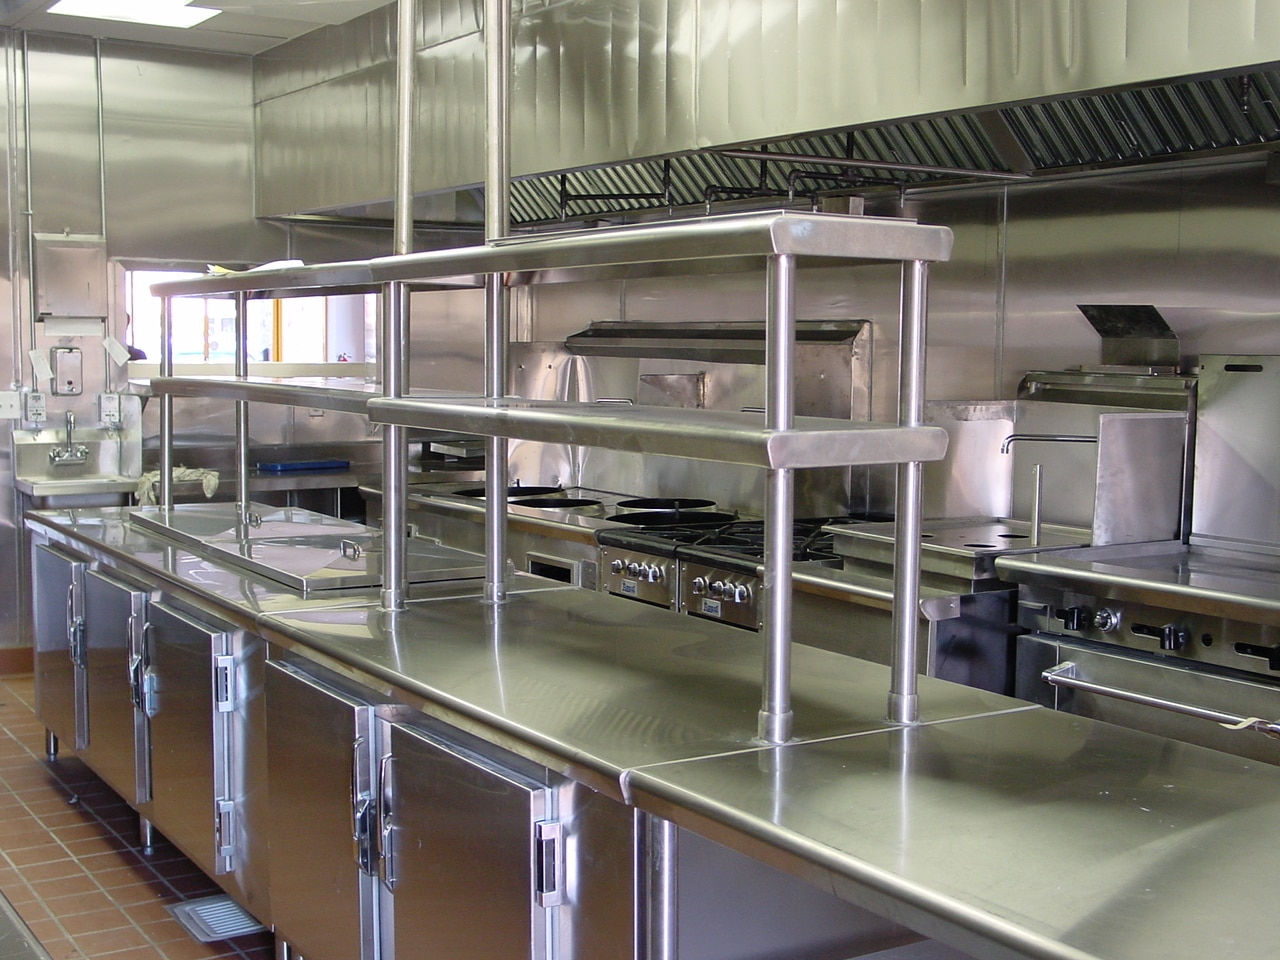 Restaurant Kitchen Equipment Repair sendaguy now technology connects you with service work from local